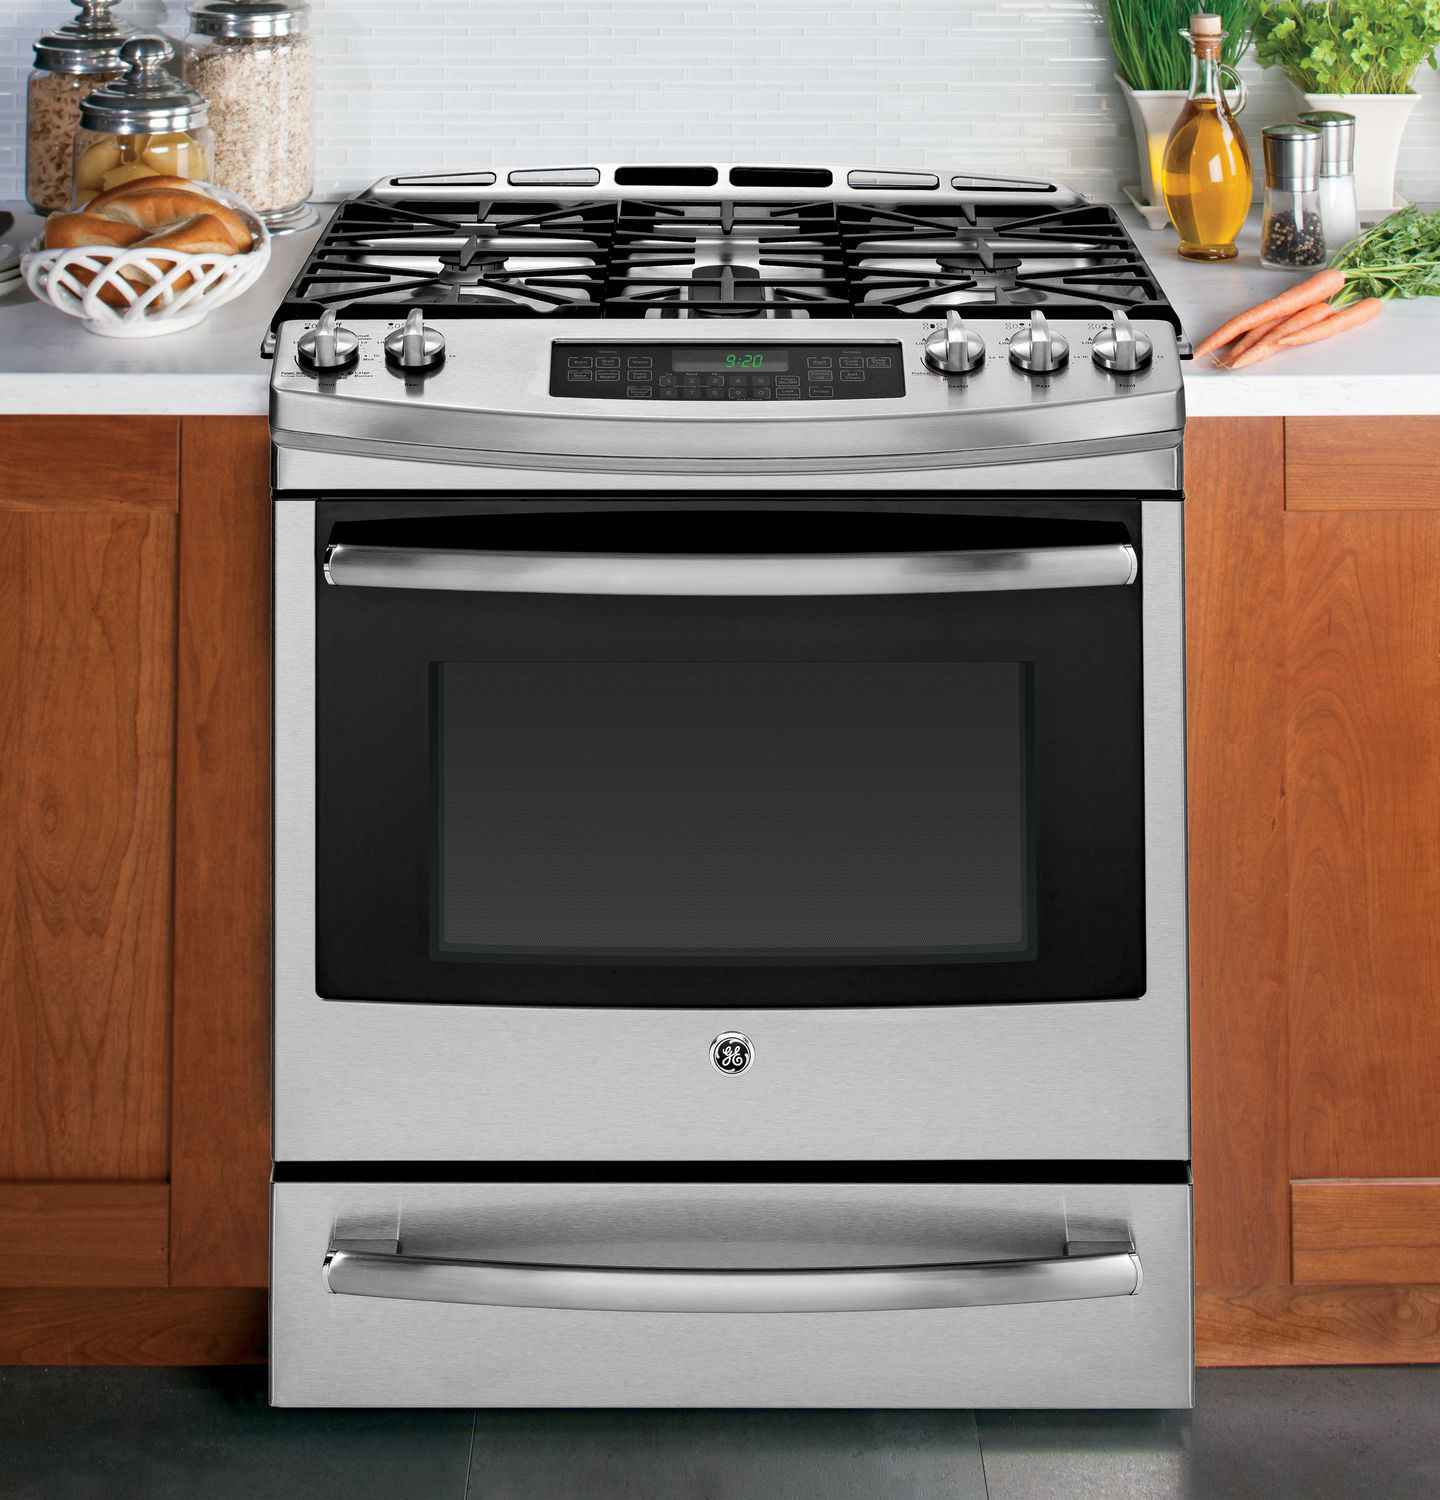 Kitchen Stoves And Ovens ~ Slide in vs freestanding what s the best range for your